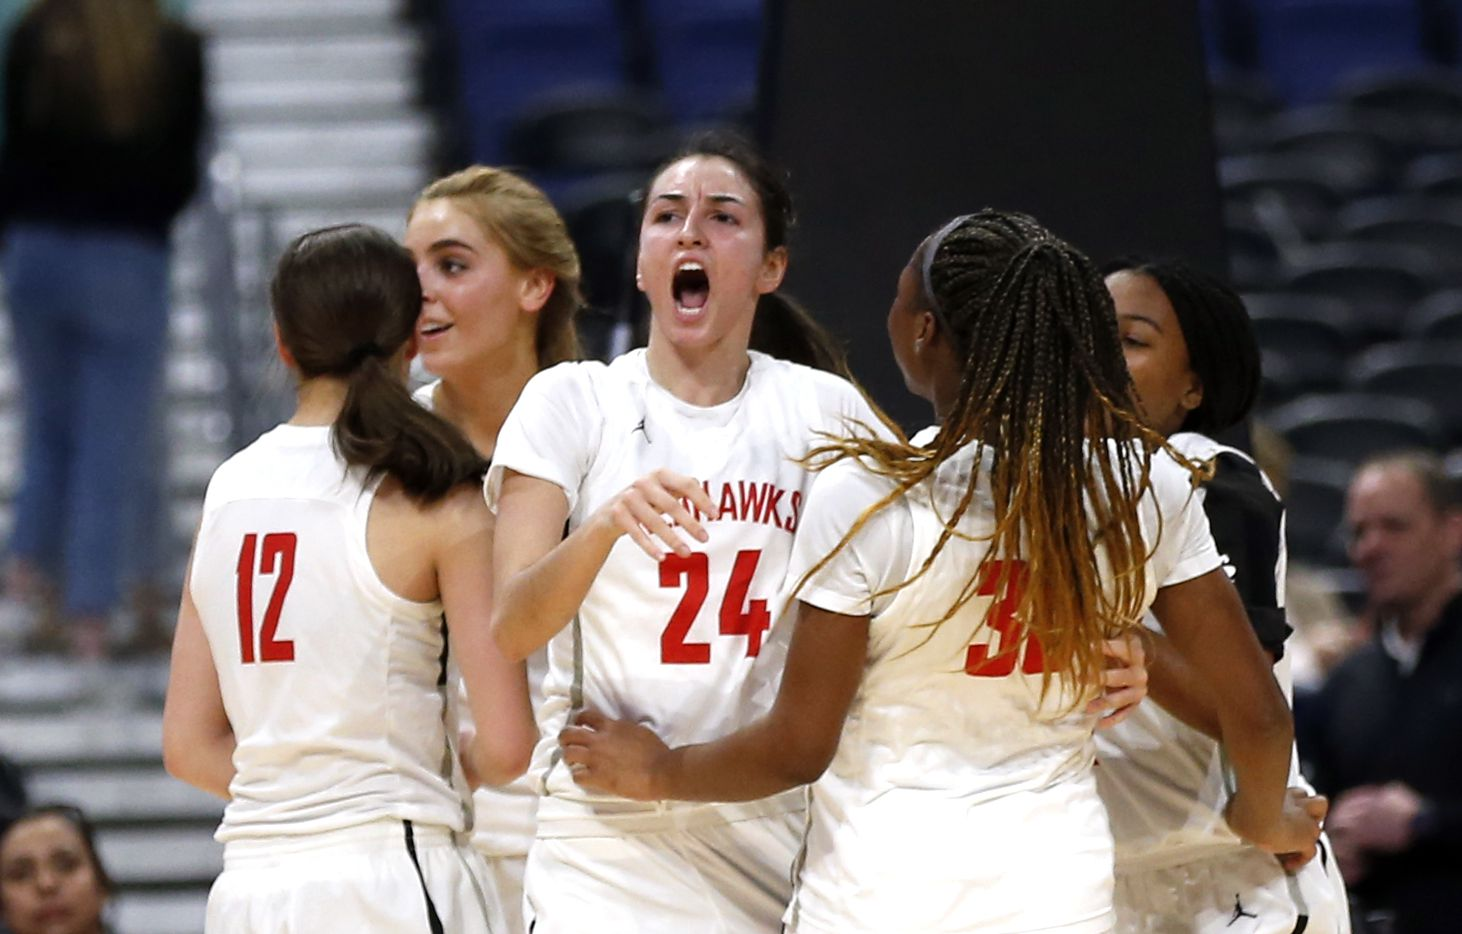 Frisco Liberty guard Maya Jain #24 reacts after causing a turnover against SA Veterans in a 5A final on Saturday, March 7, 2020 at the Alamodome.